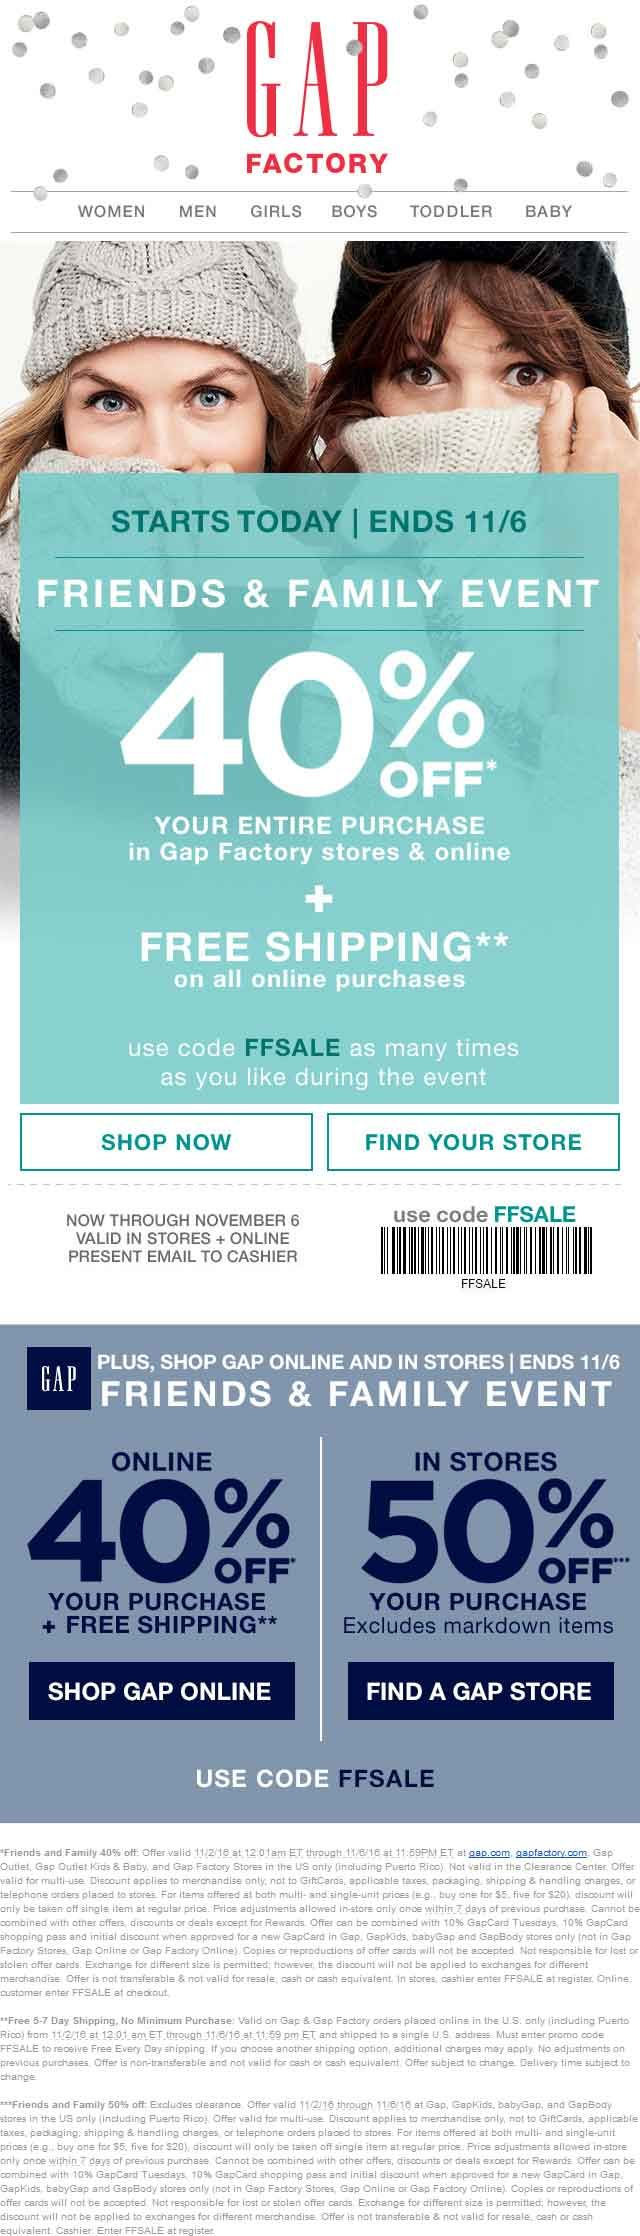 Gap coupon gap promo code from the coupons app off at gap gap outlet gap outlet kids baby and gap factory or online via promo code ffsale june